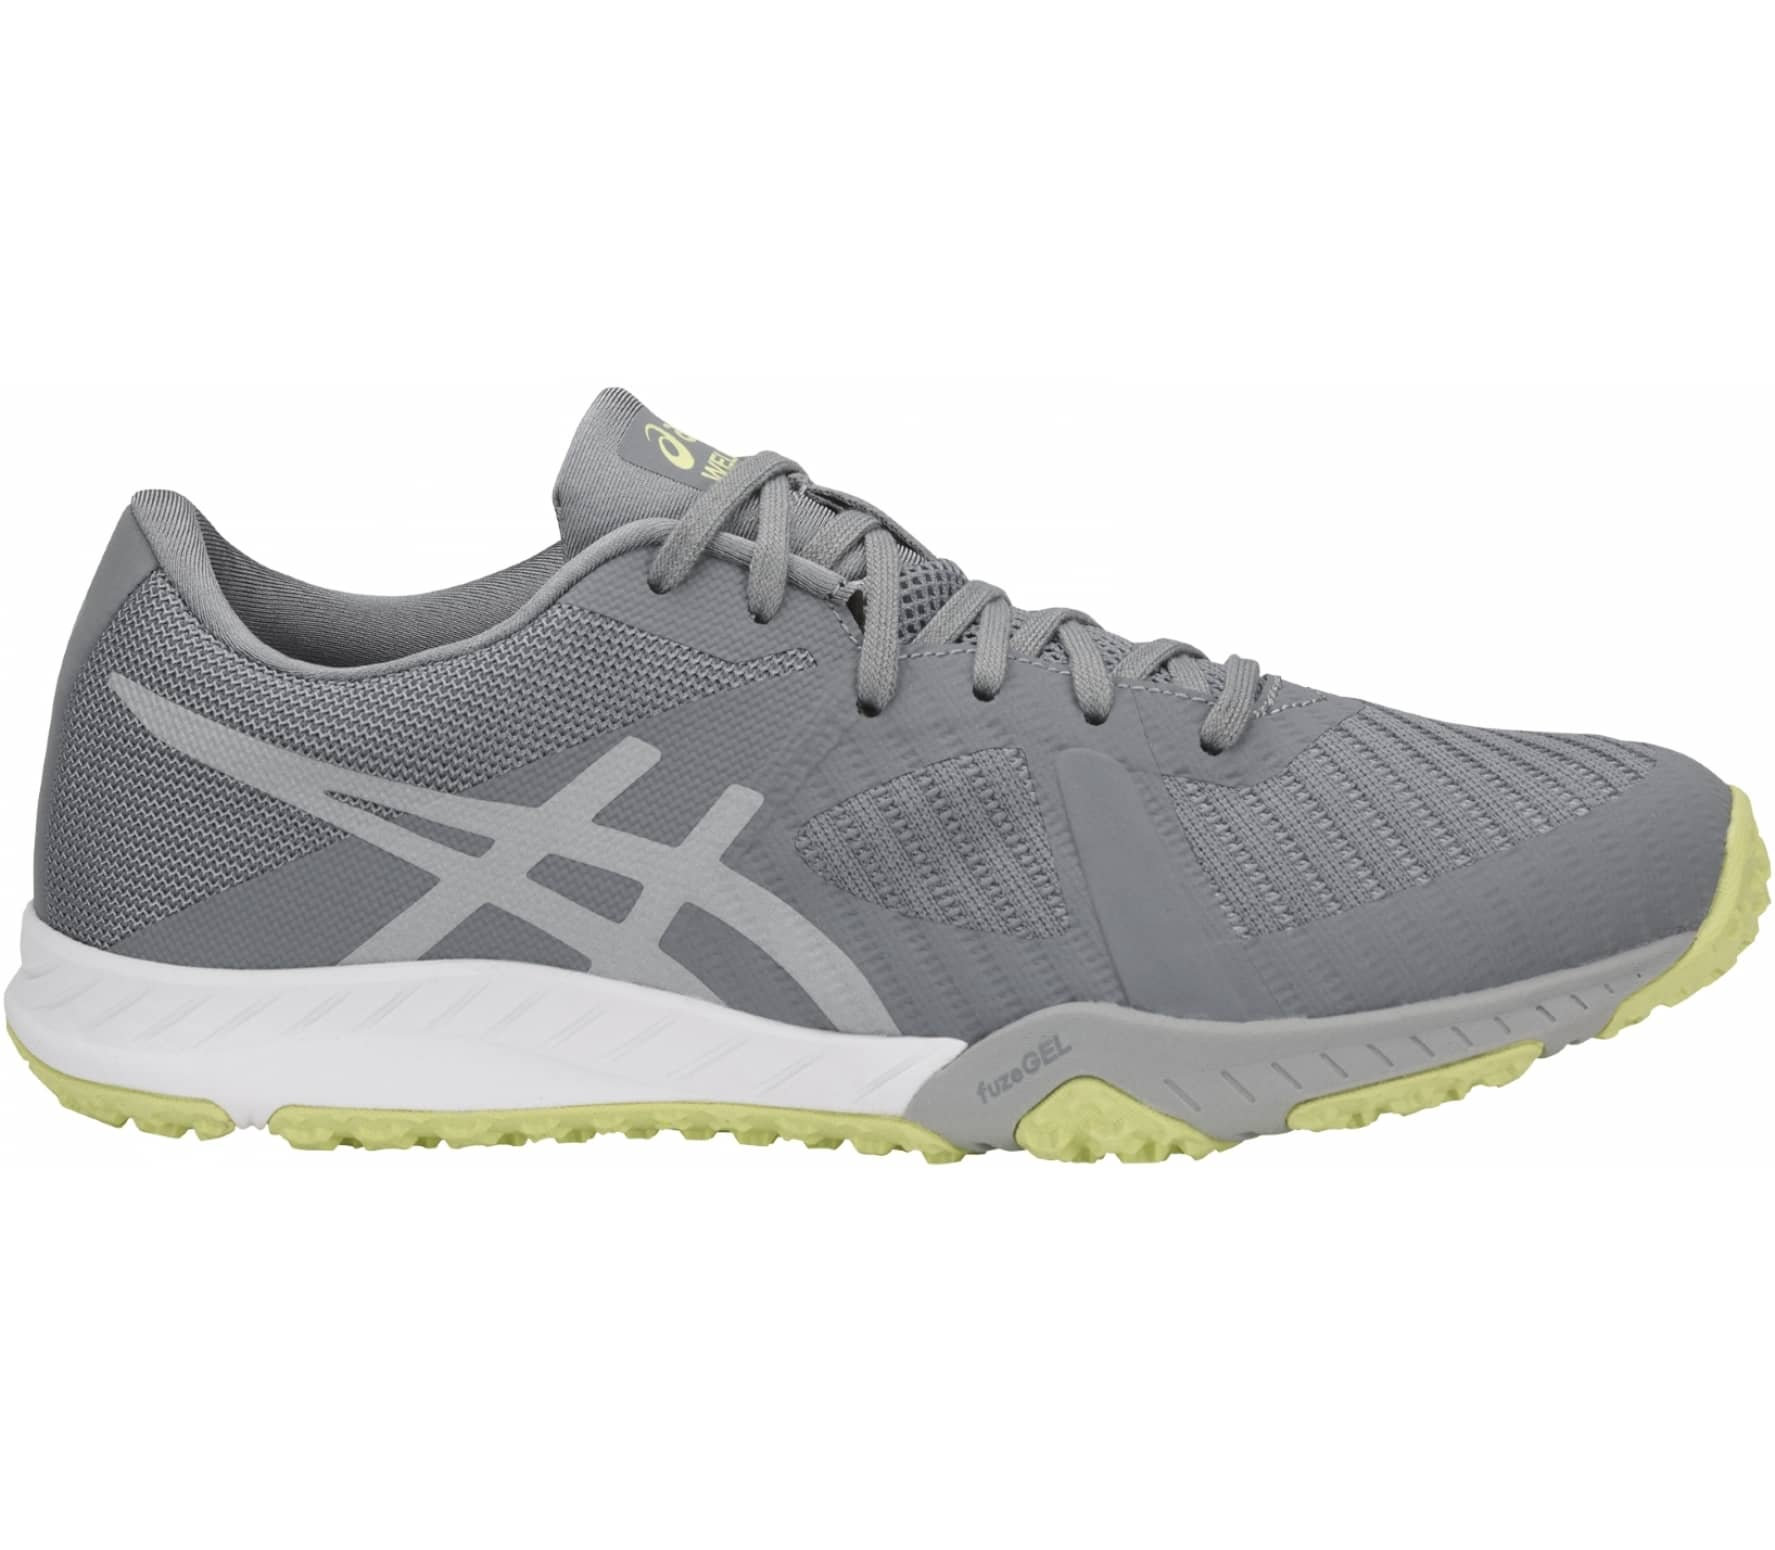 ASICS Weldon X Damen Trainingsschuh (grau)